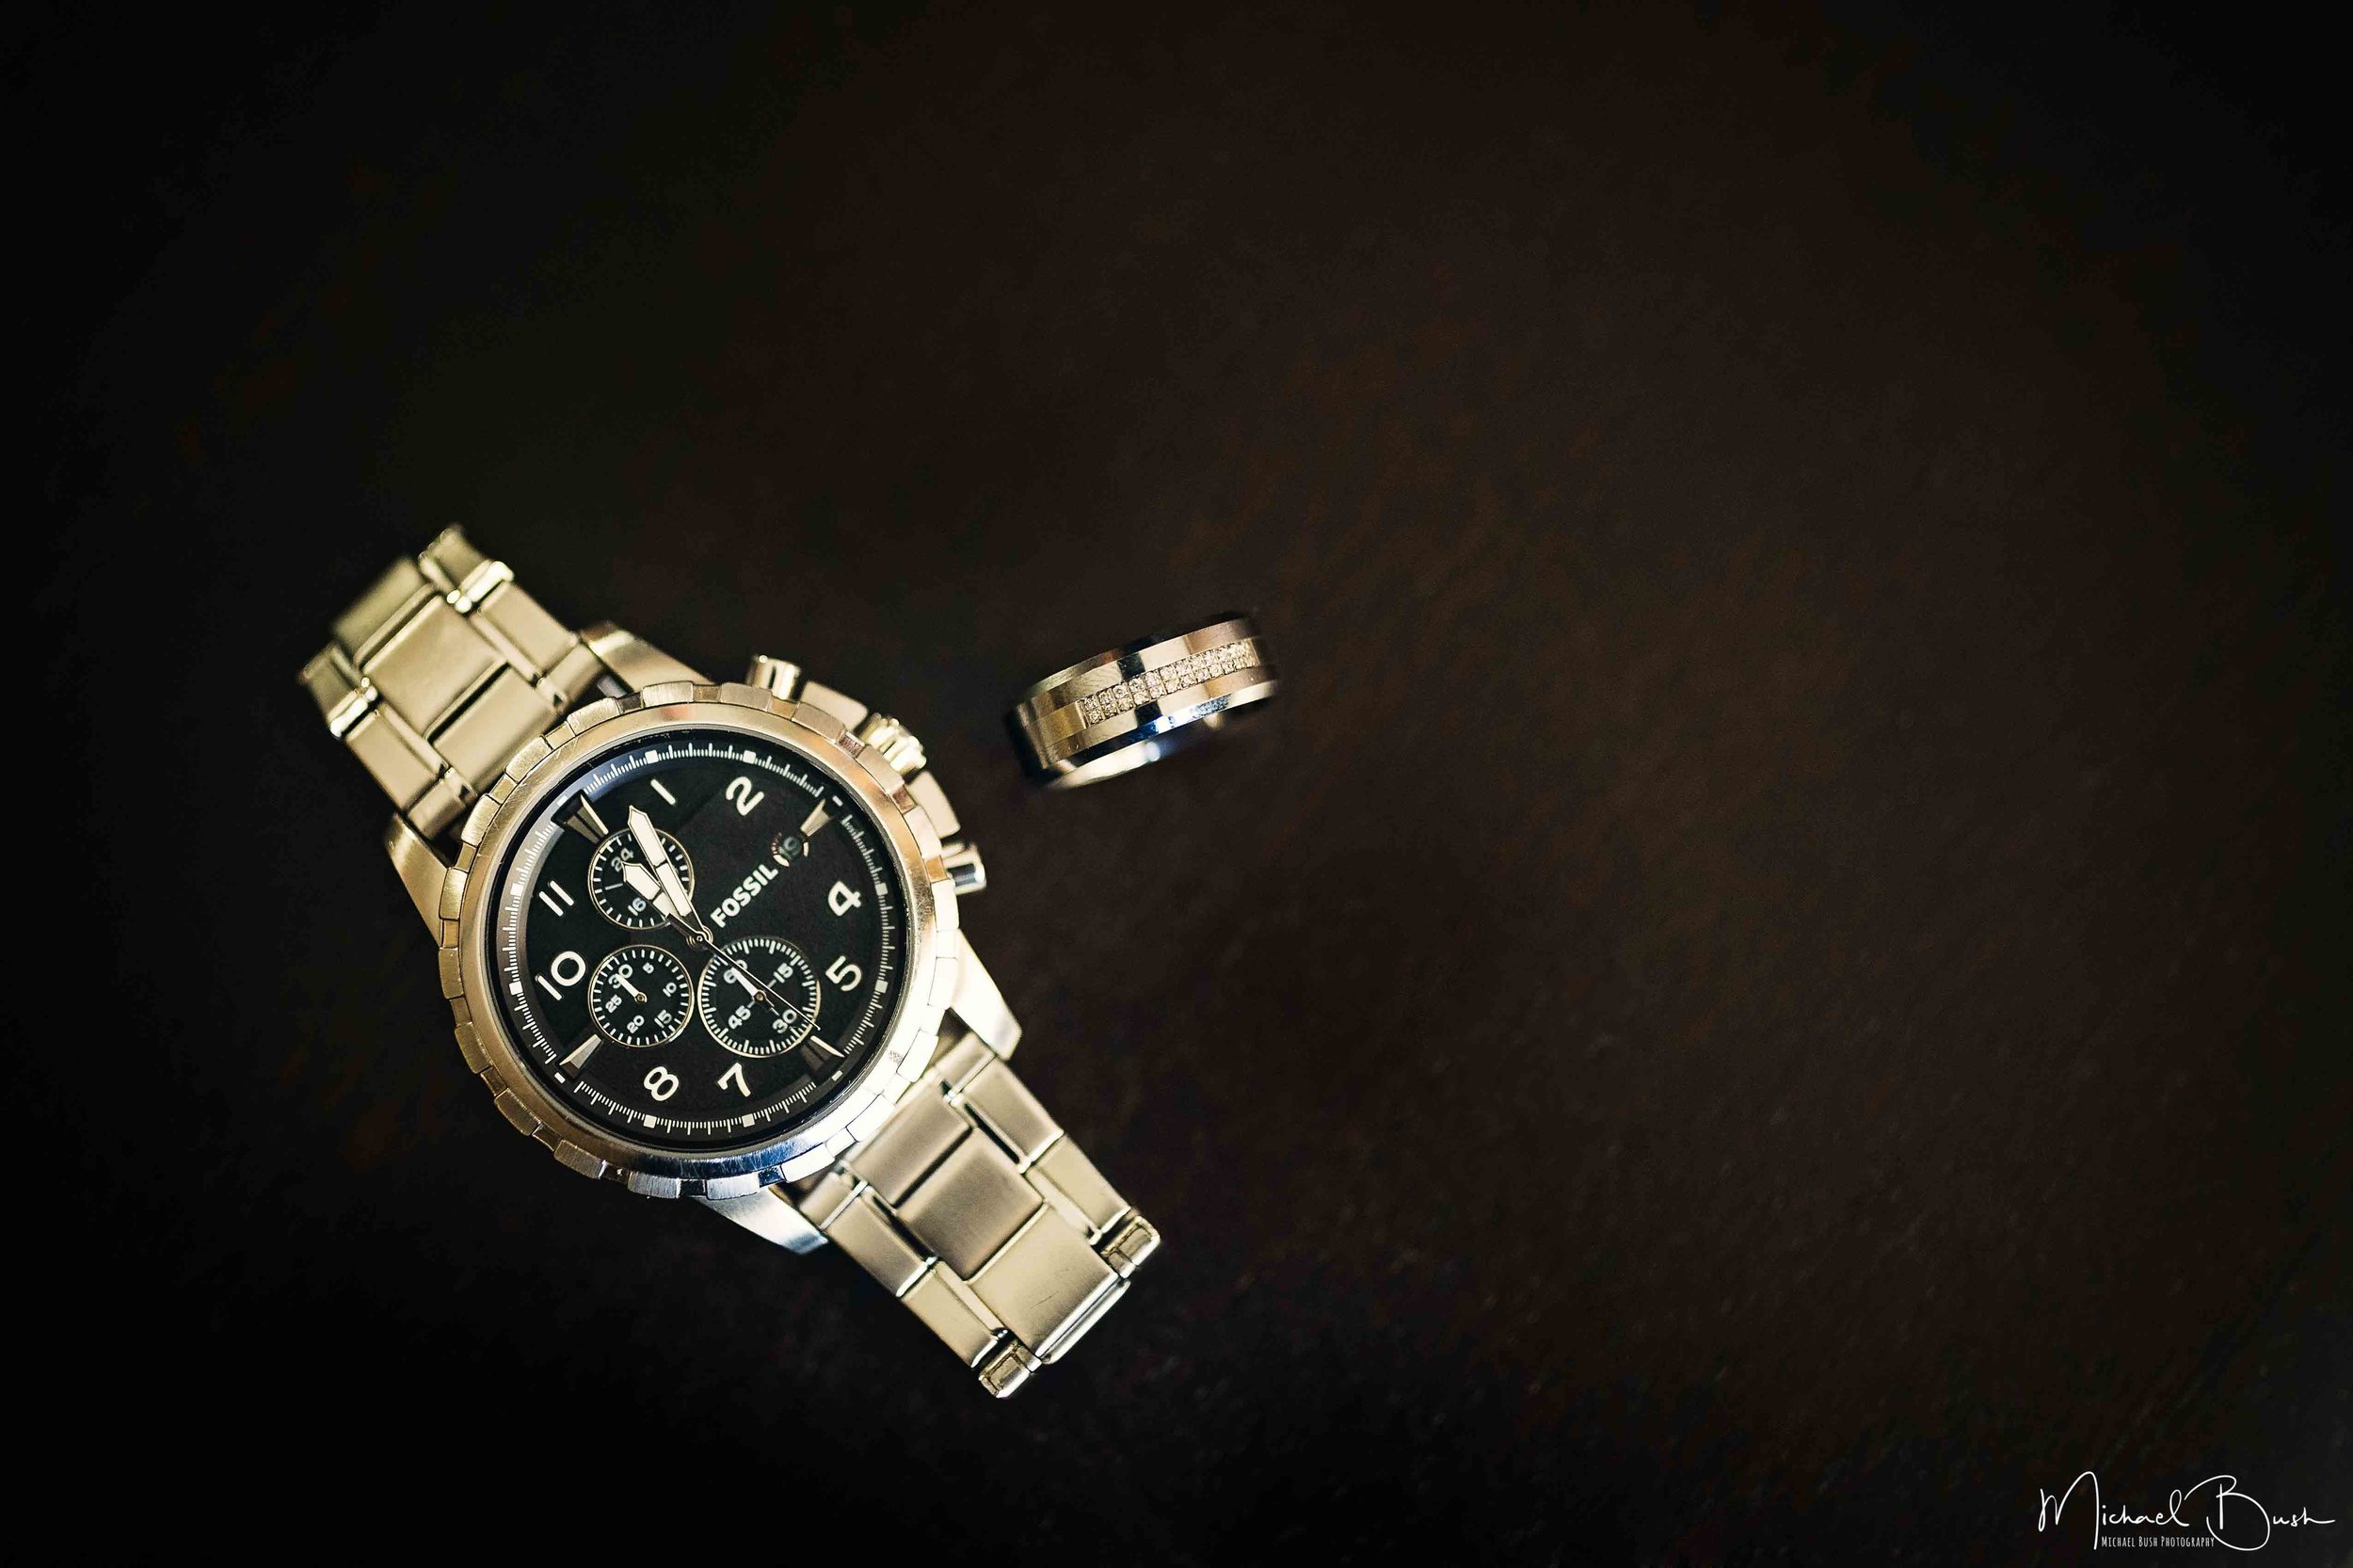 Wedding-Details-Groom-Fort Worth-ring-watch-rolex.jpg